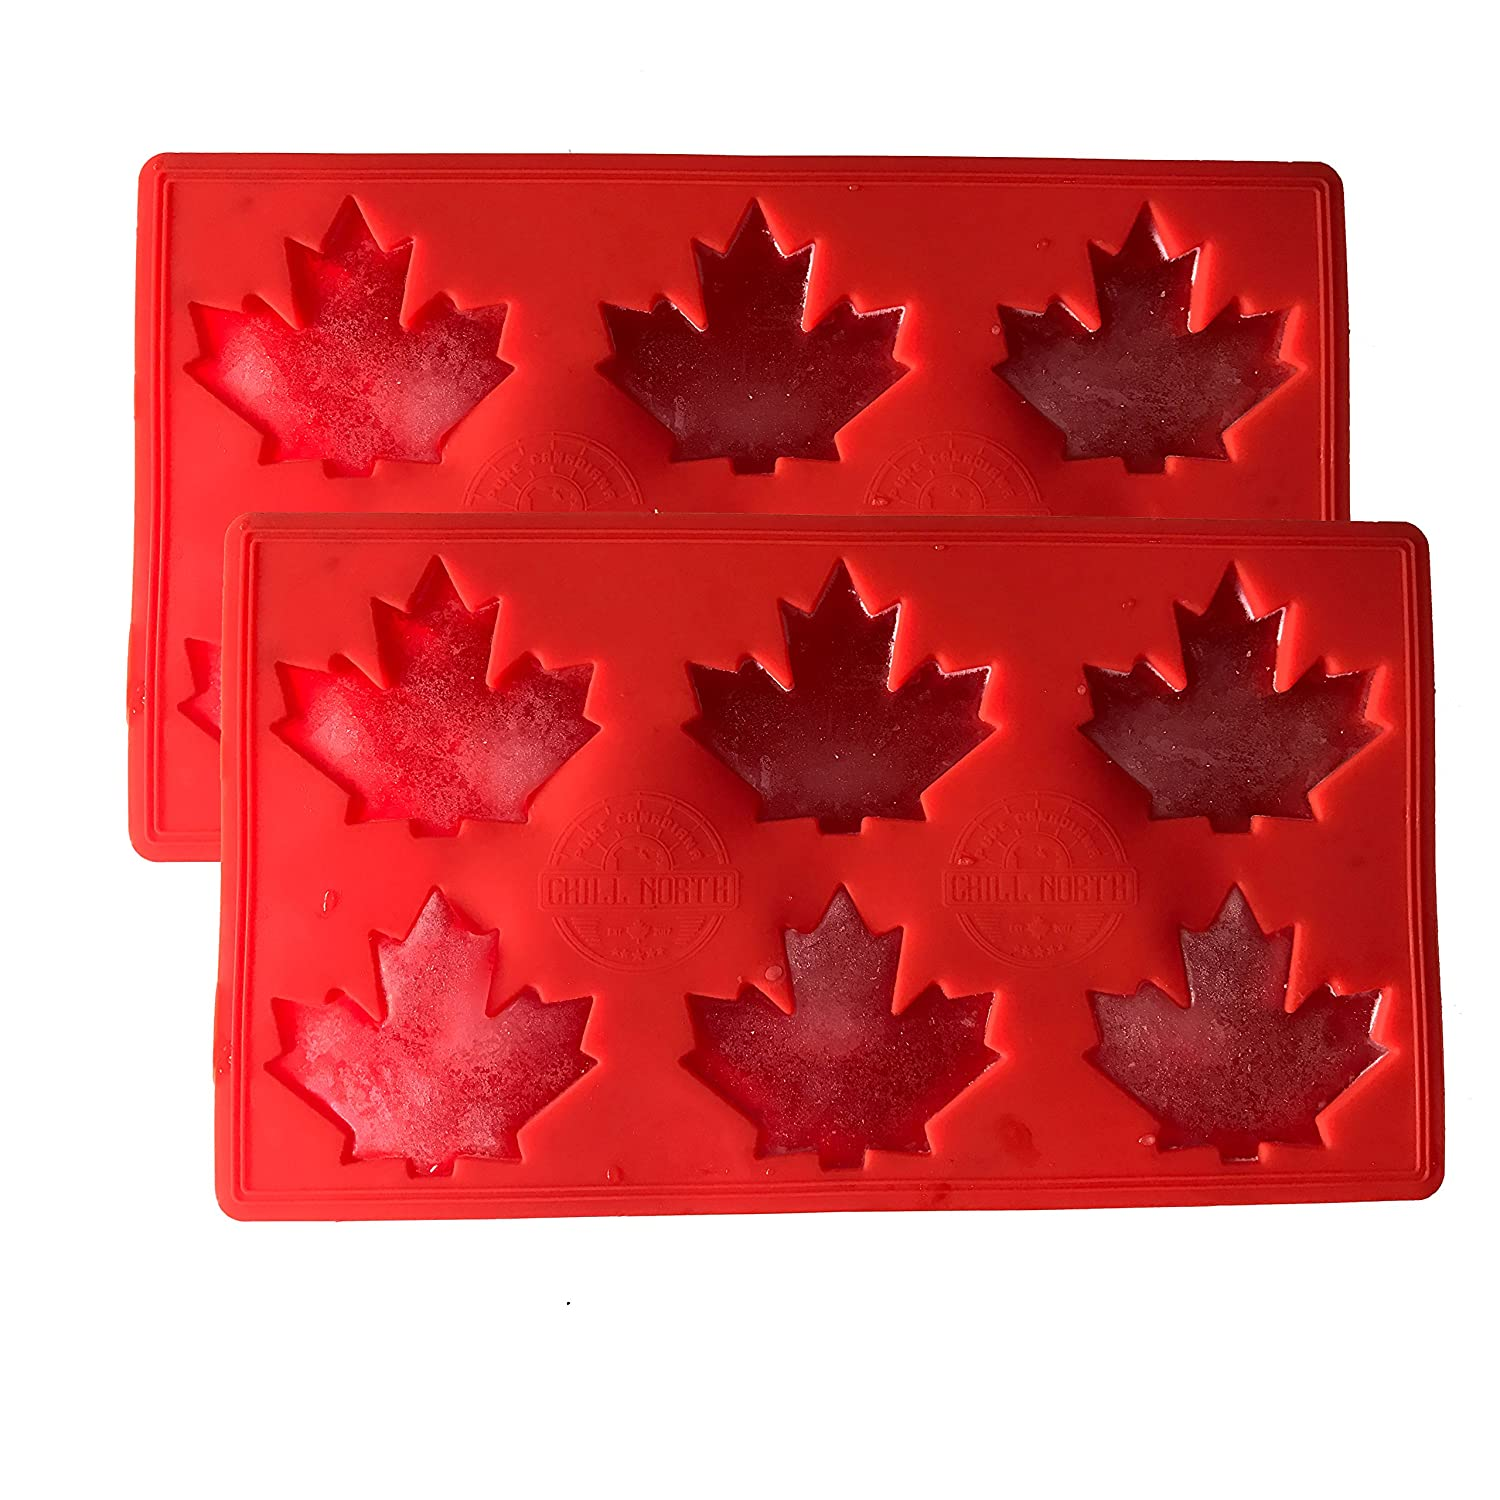 Canadiana Everyday by Chill North Set of Two Large Unique Silicone Mould One of a Kind Gift idea! Maple Leaf Ice Cube Tray